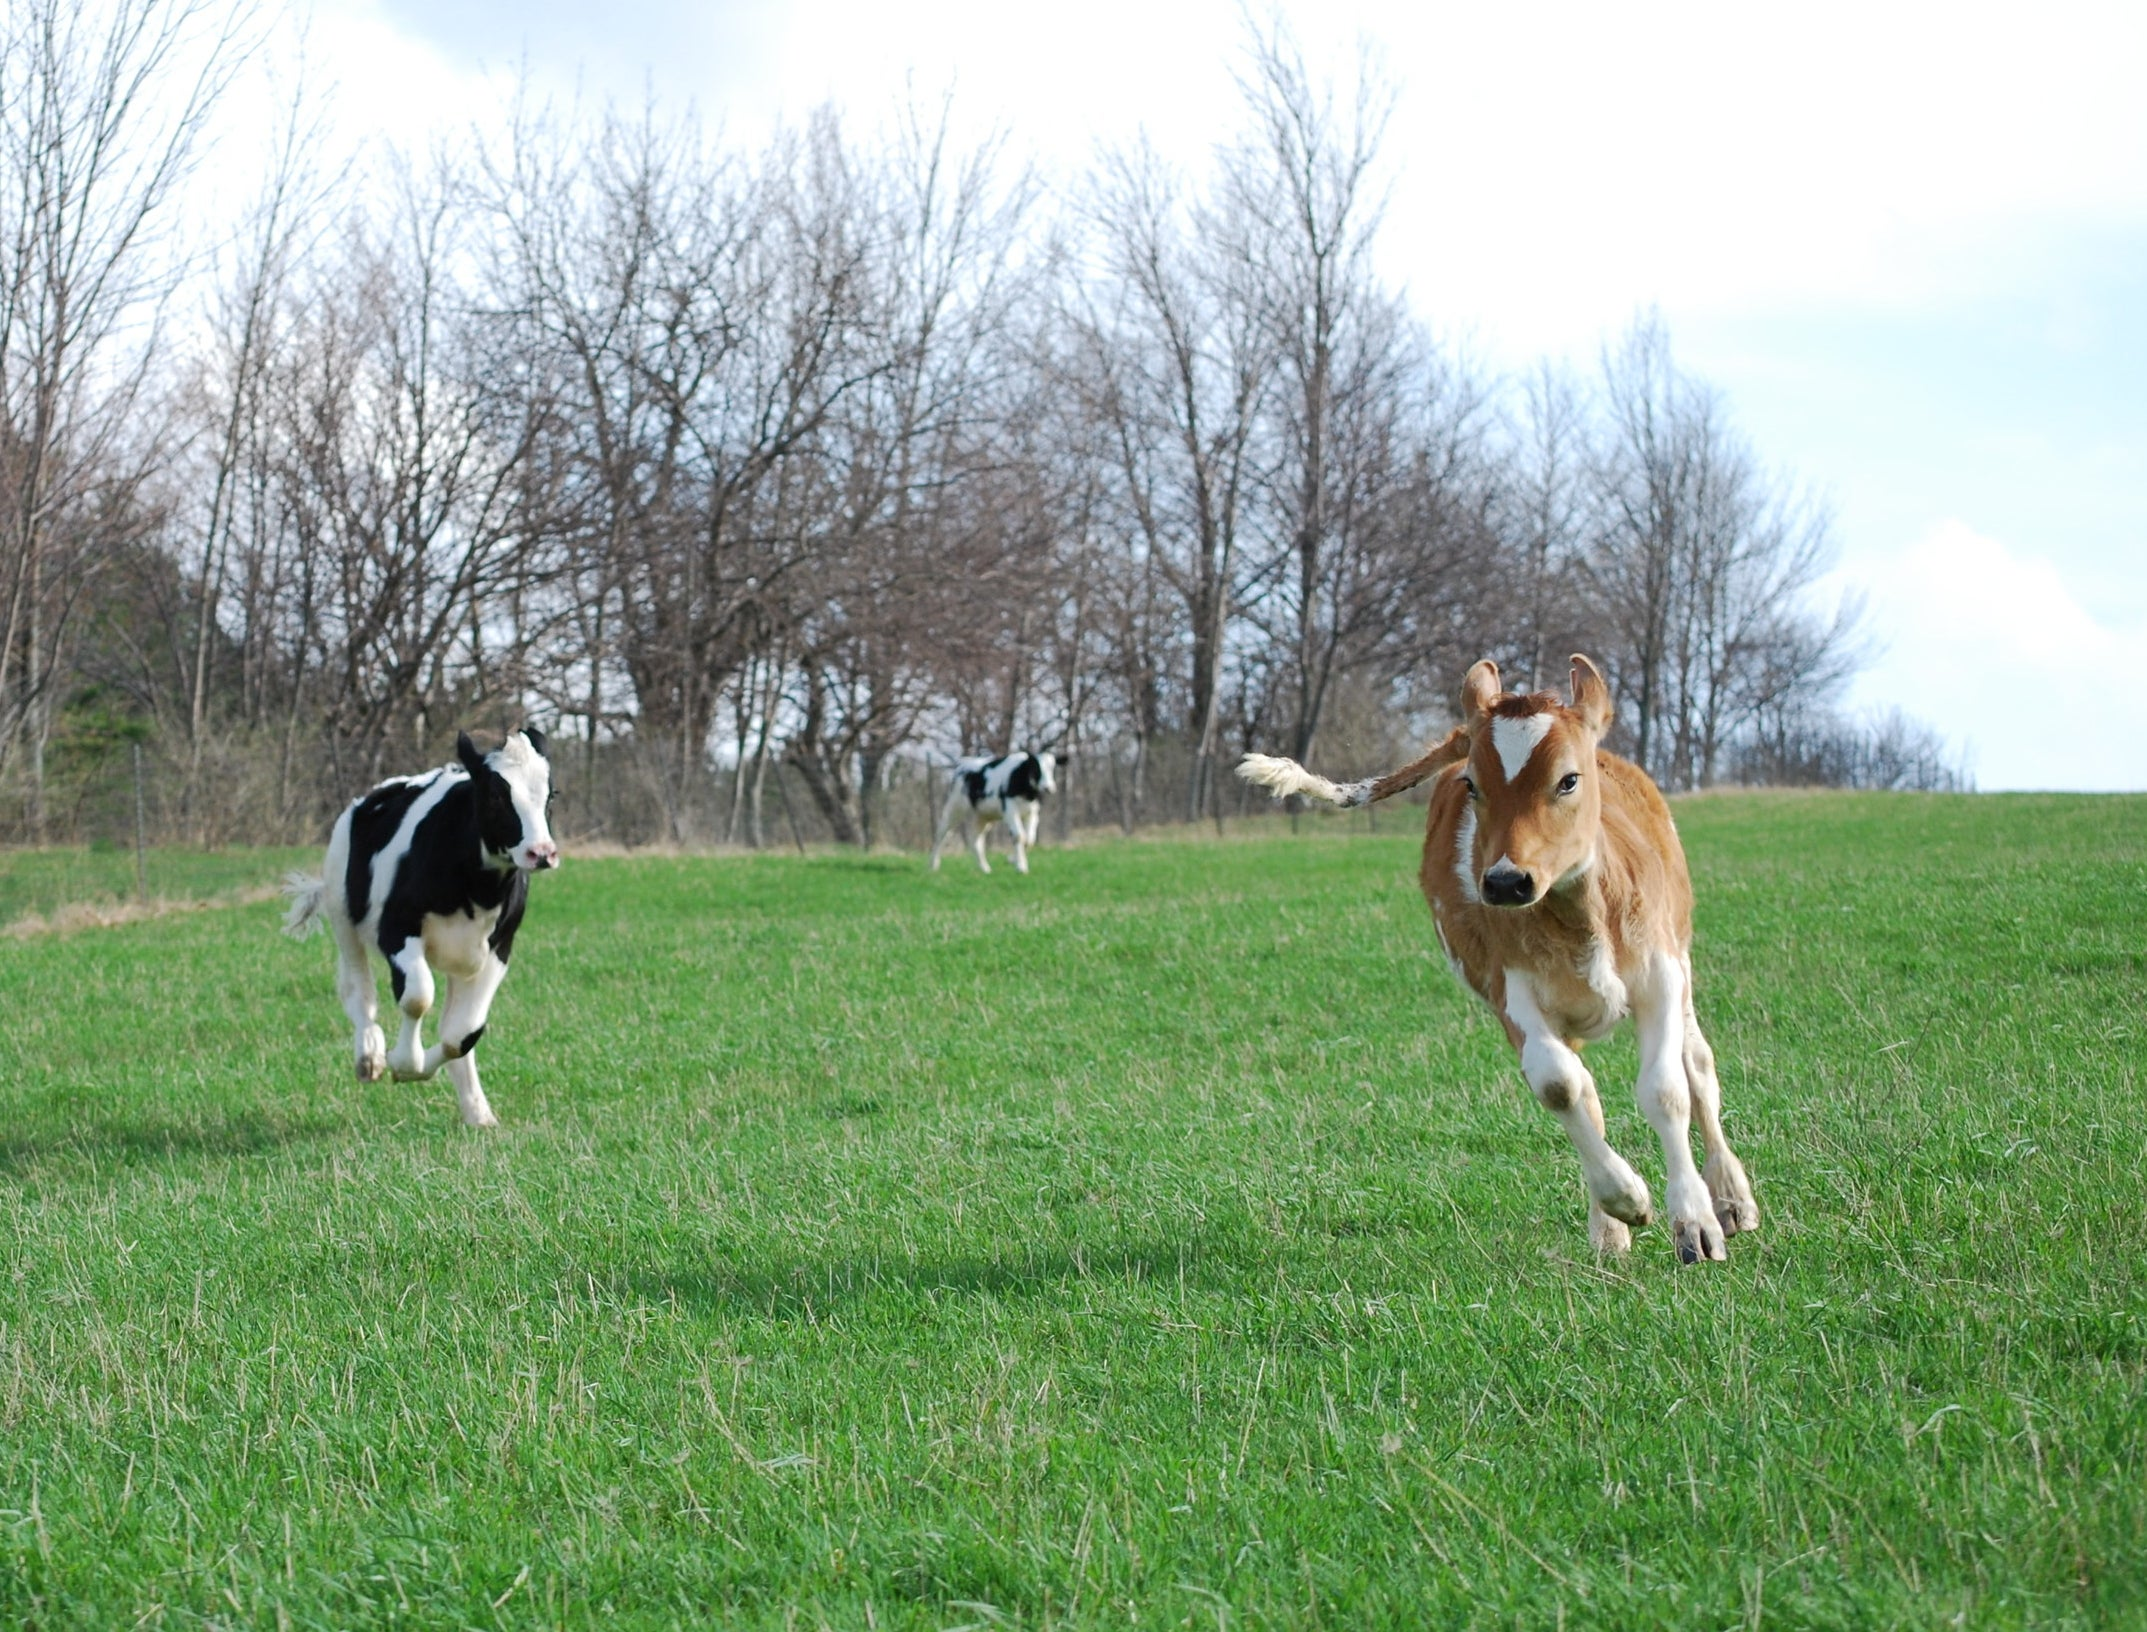 three calves running in a field